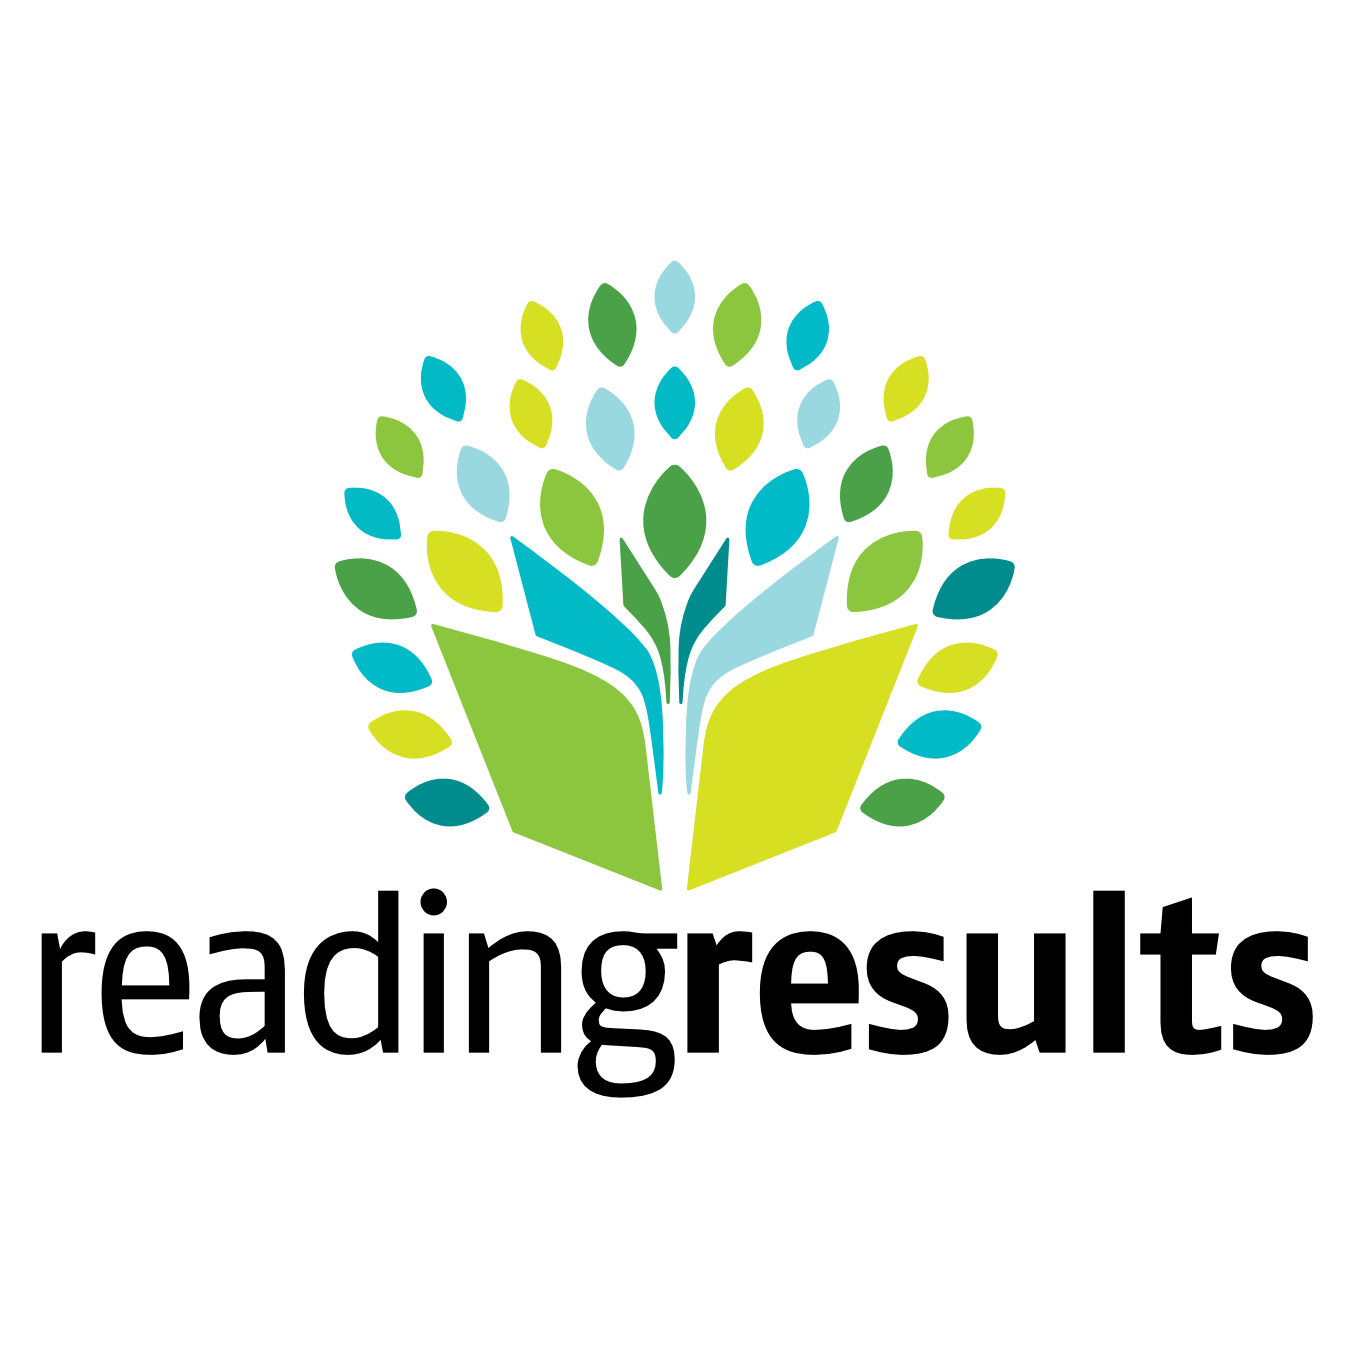 Reading Results